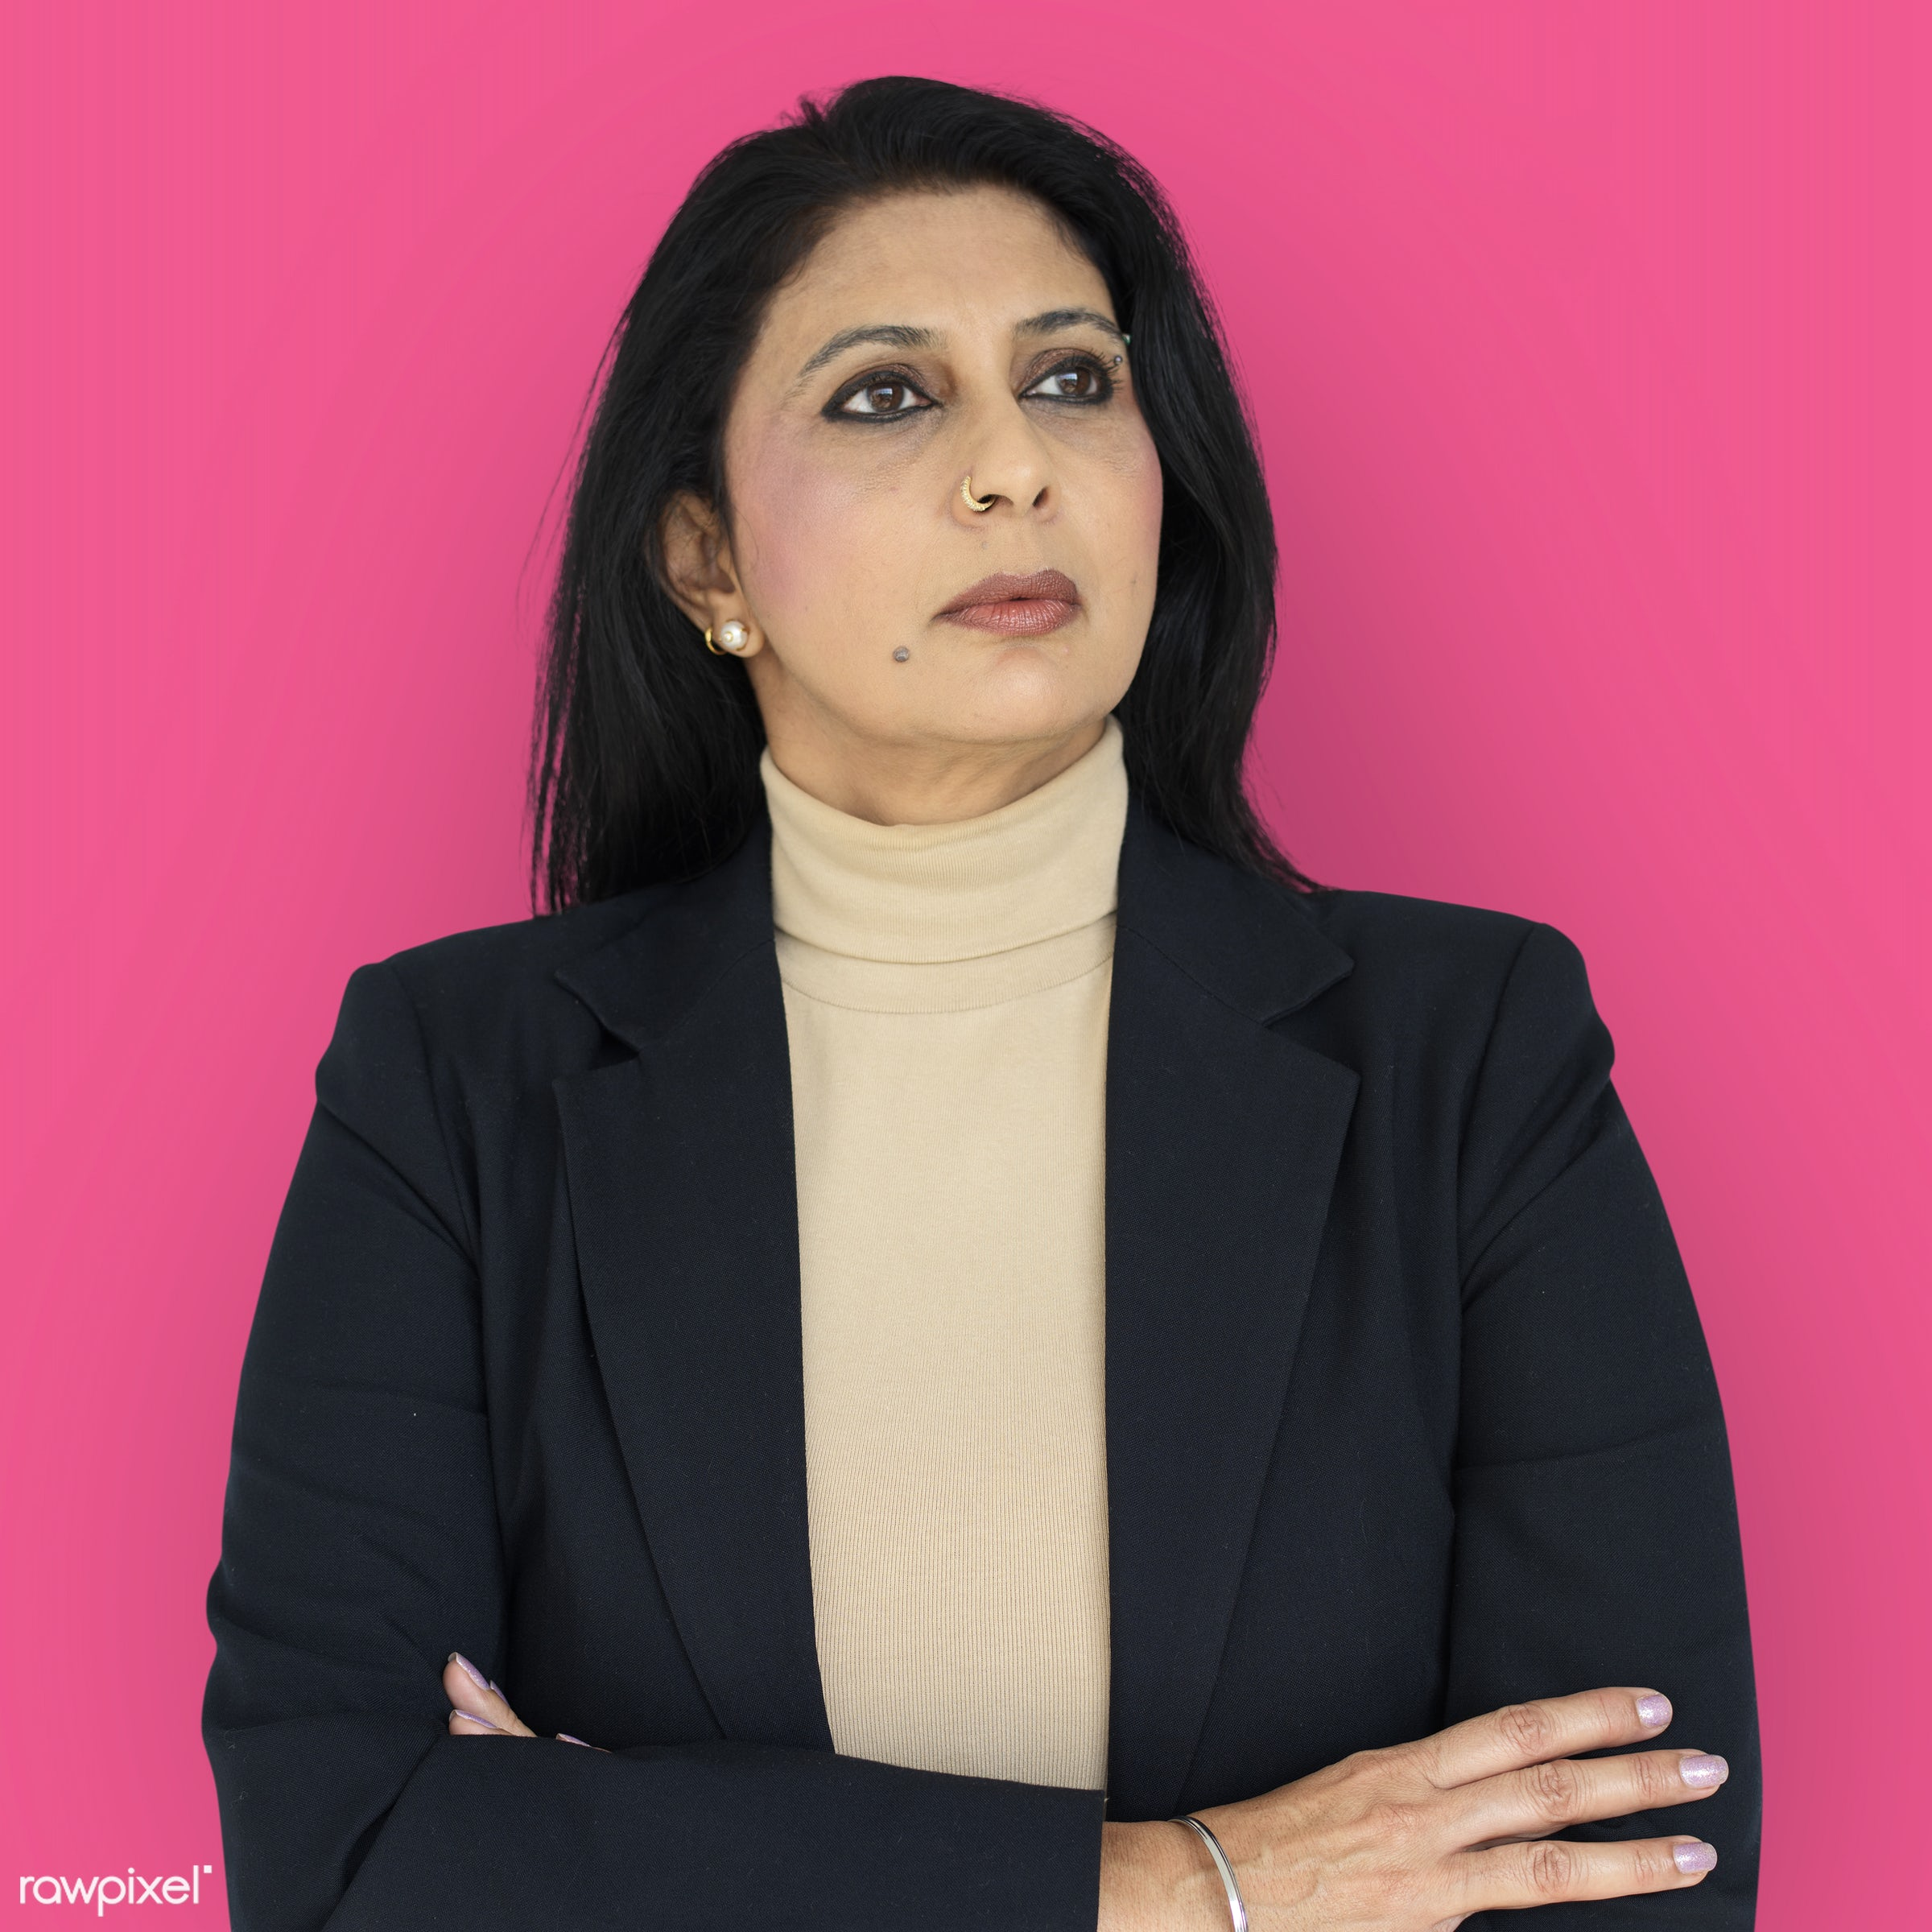 expression, intelligent, studio, person, vibrant, people, woman, pink, serious, isolated, businesswoman, portrait, thinking...